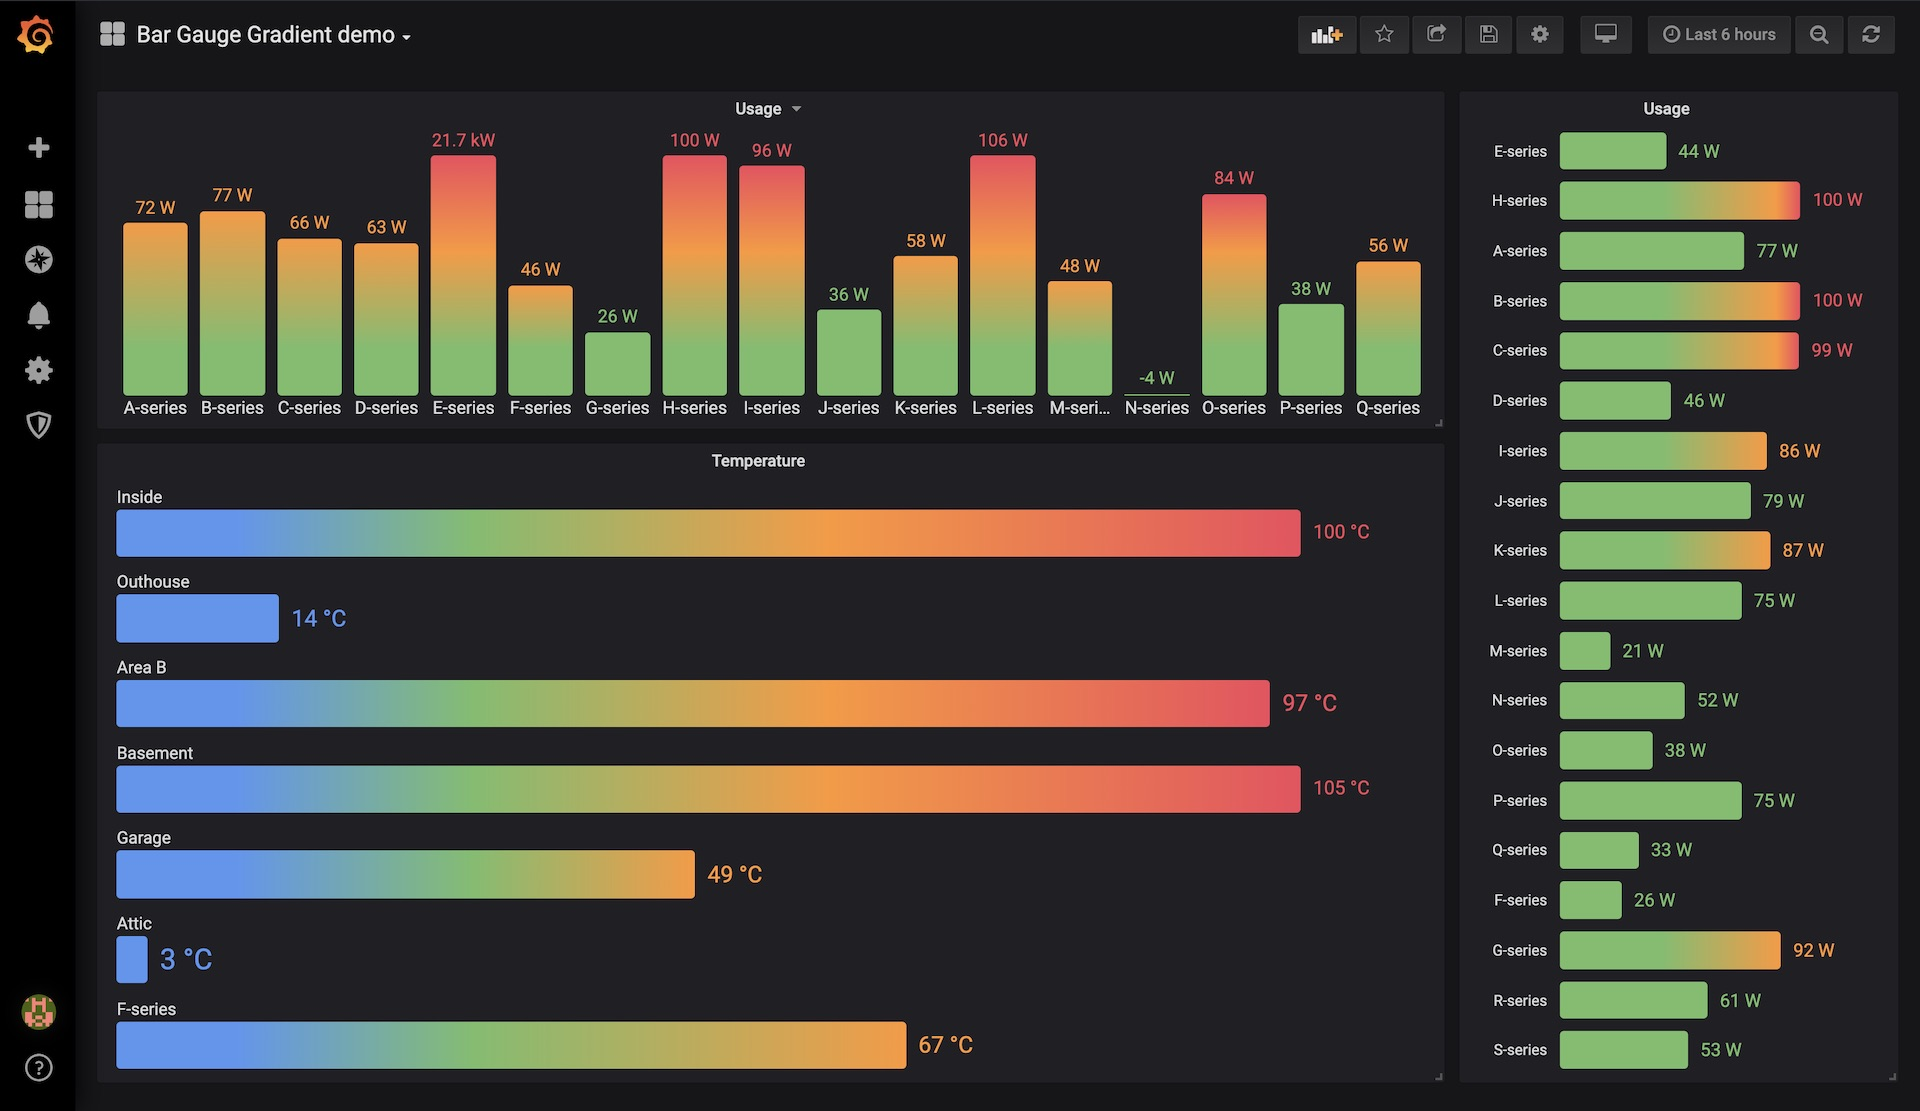 Sneak Preview of New Visualizations Coming to Grafana